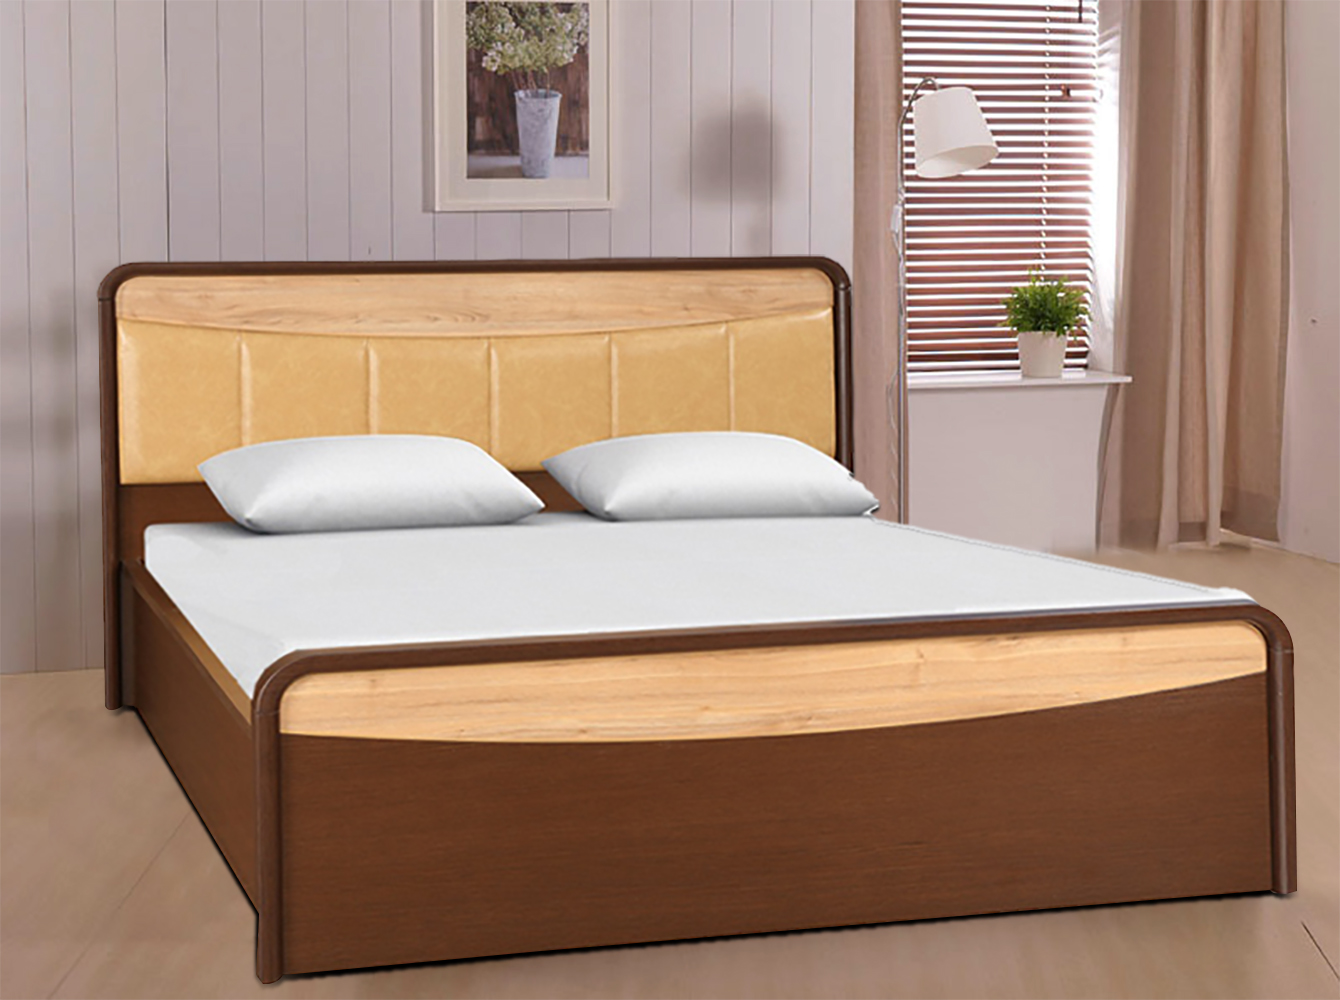 Bethovan Engineered Wood Hydraulic Storage Queen Size Bed in Light And Dark Walnut Colour by HomeTown